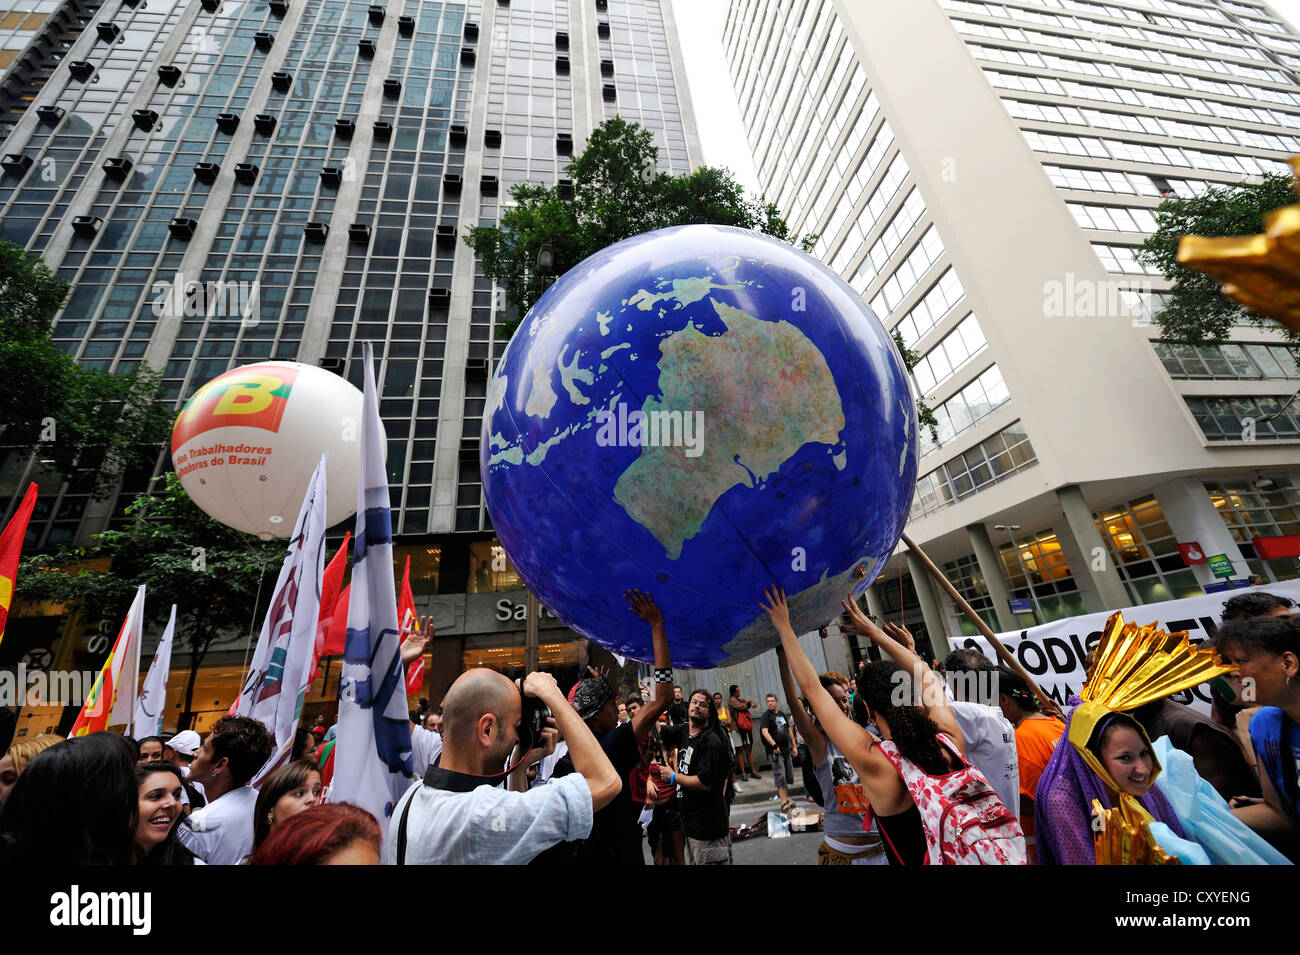 Demonstrators holding a giant balloon, globe into the air, demonstration at the UN Conference on Sustainable Development - Stock Image